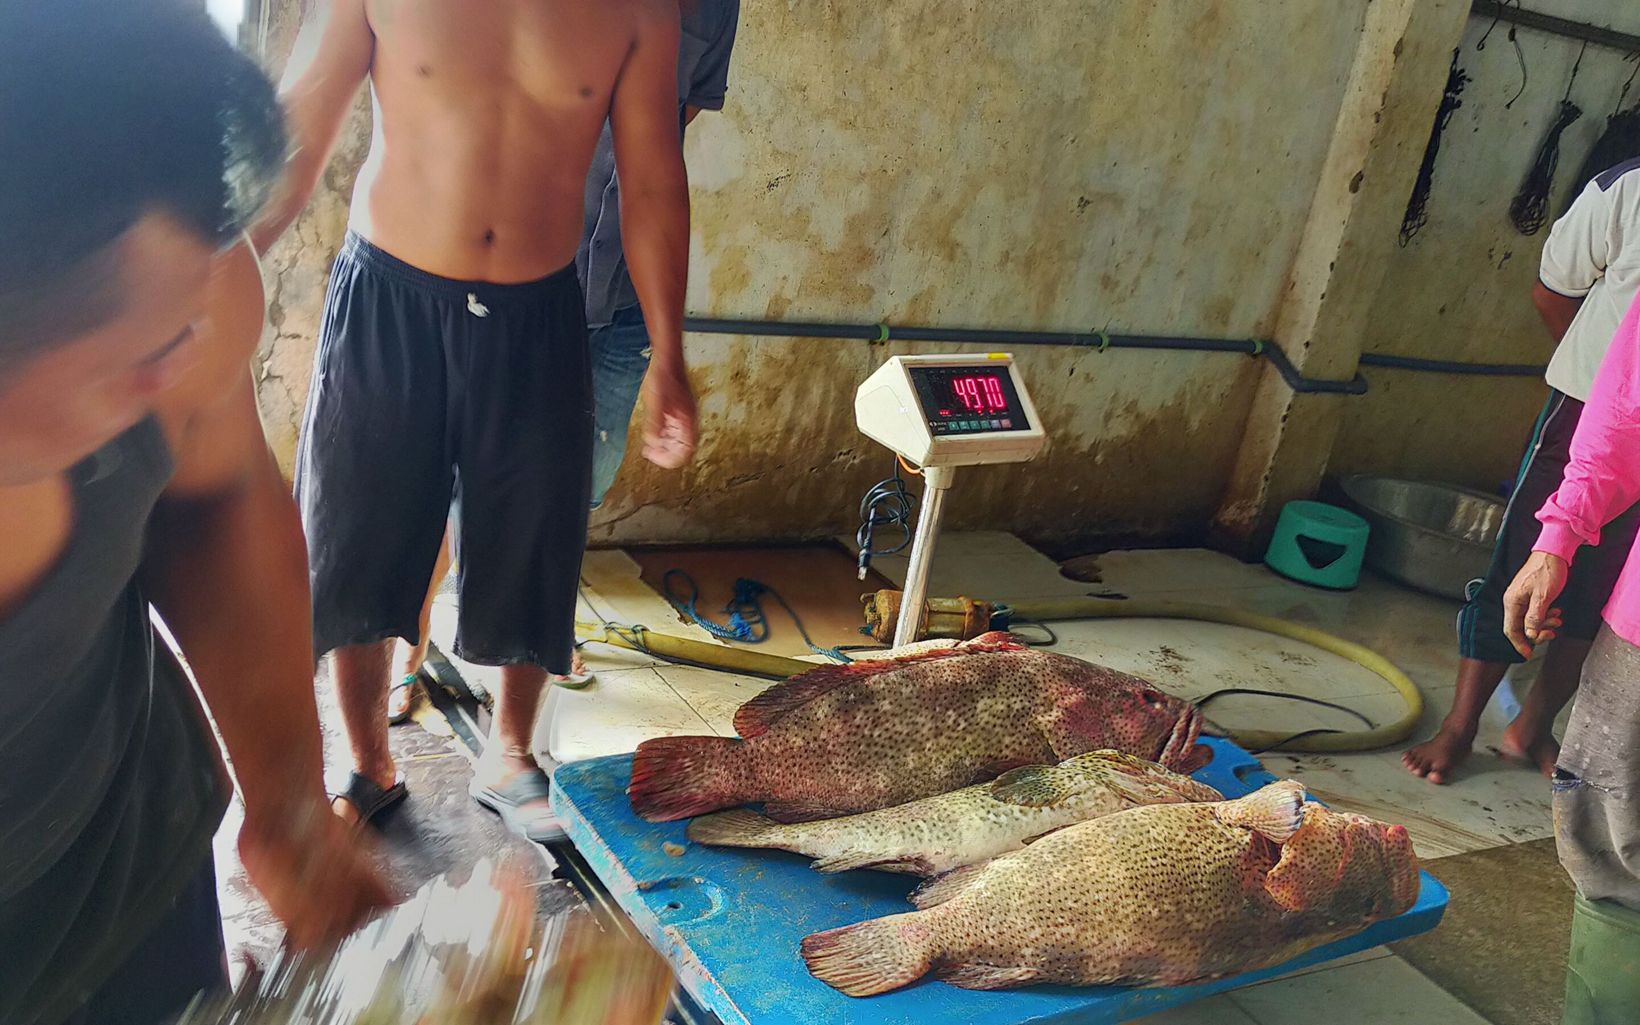 Three large fish are being weighed on a scale.